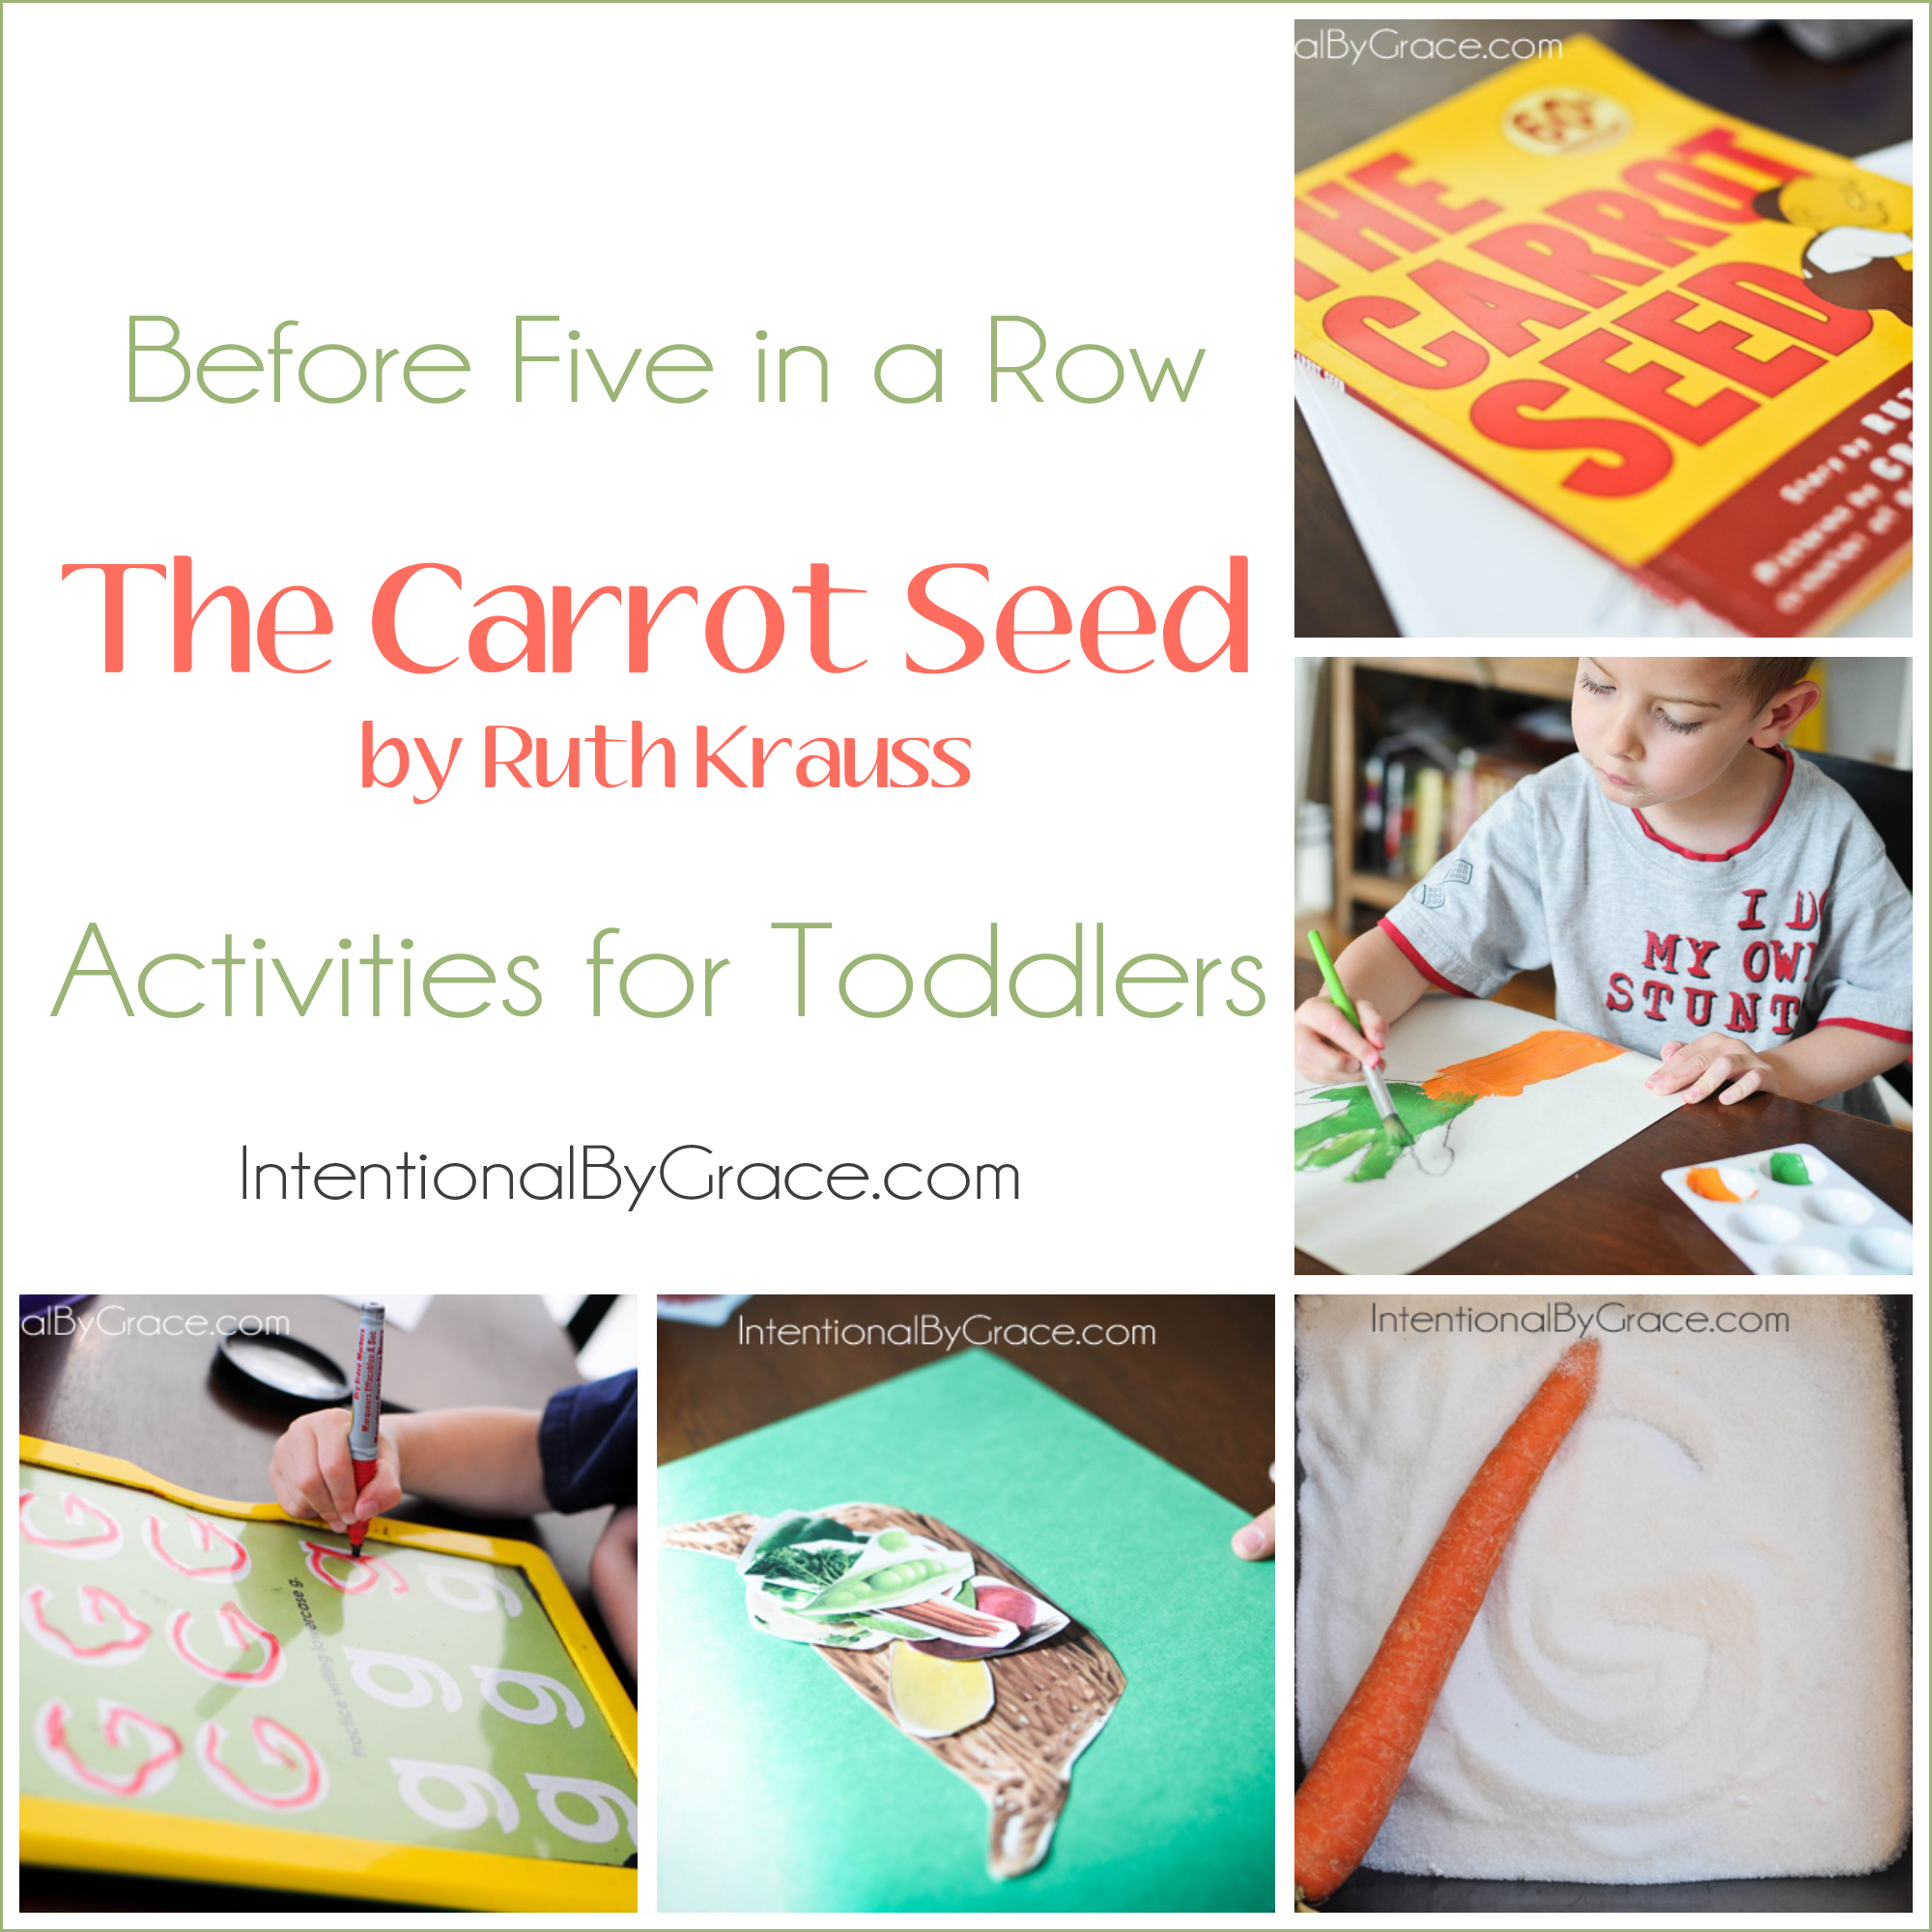 The Carrot Seed | Before Five in a Row Activities for Toddlers